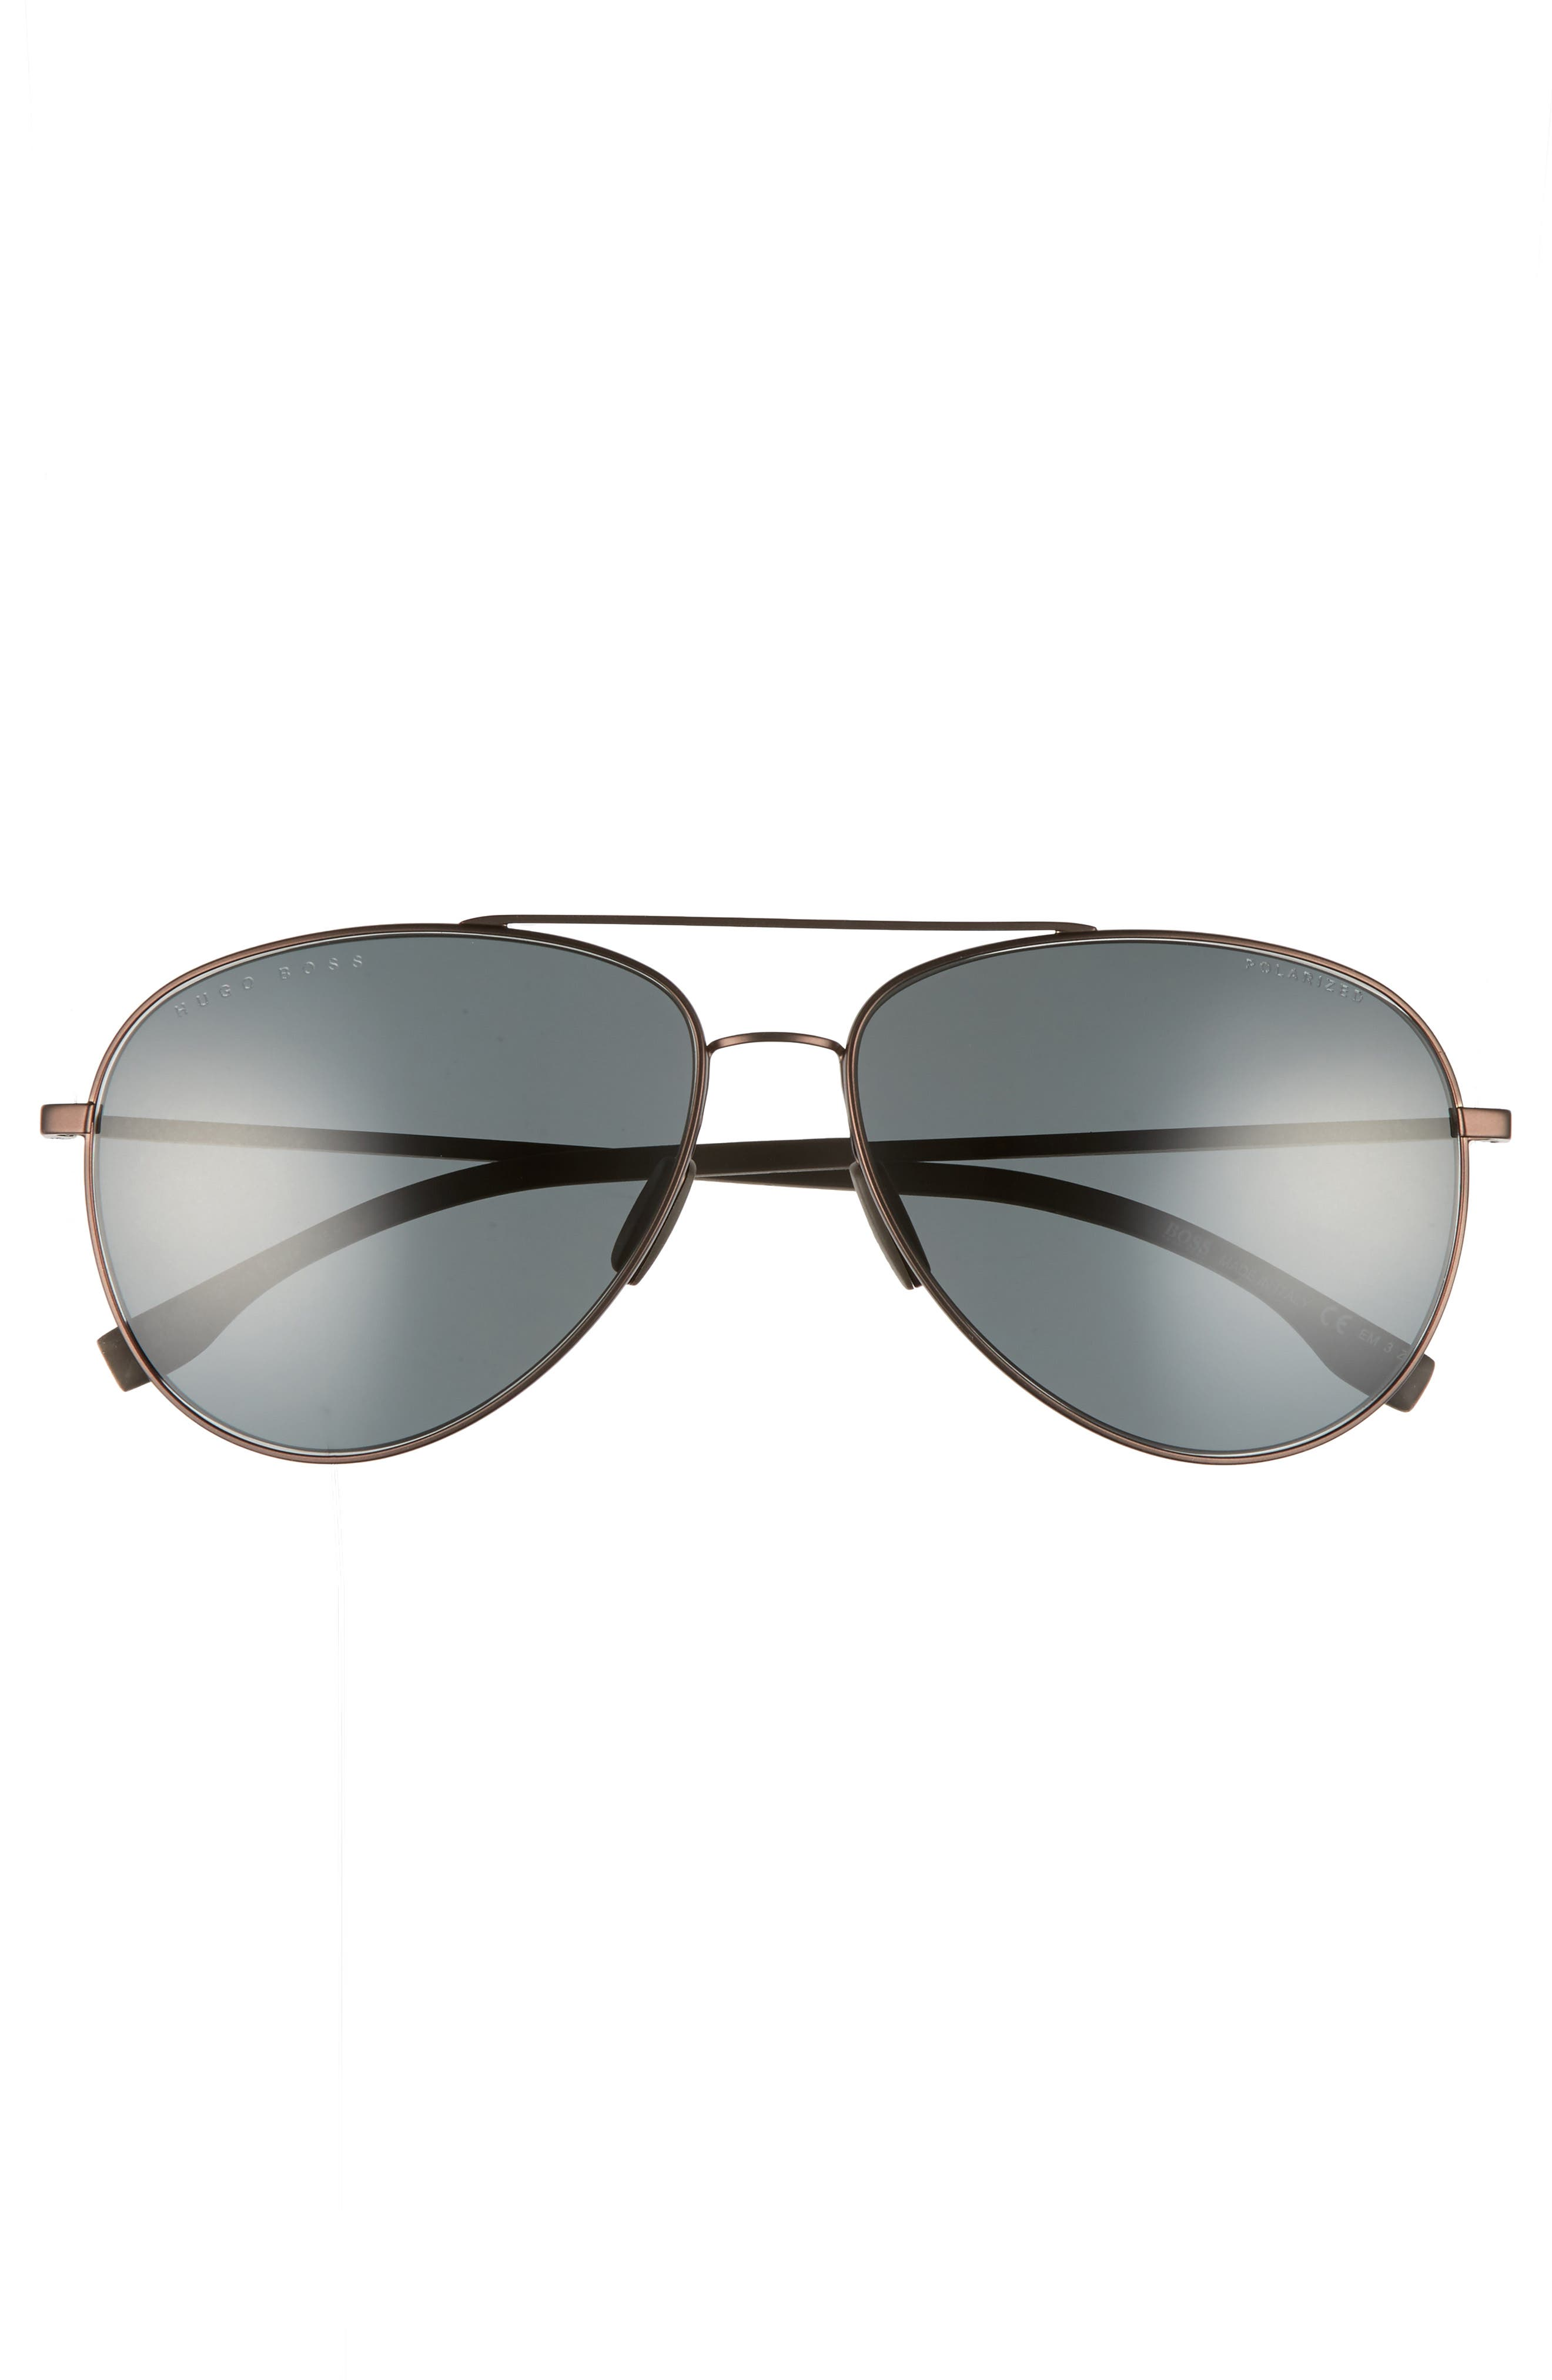 59mm Aviator Sunglasses,                             Alternate thumbnail 2, color,                             Brown Rubber/ Brown